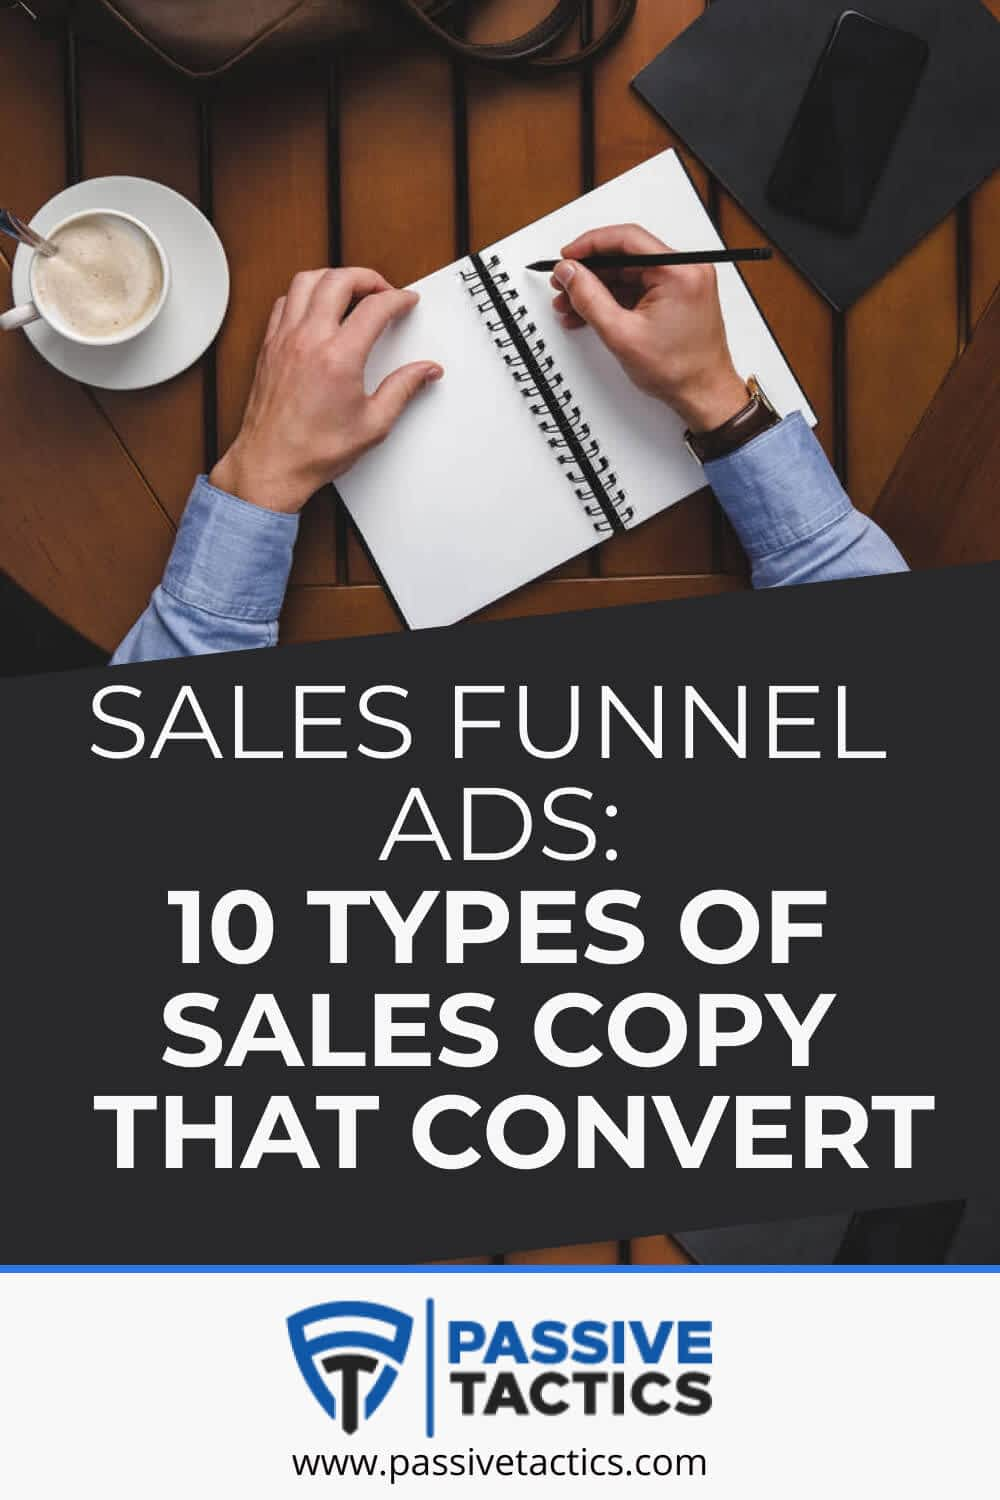 Sales Funnel Ads: 10 Types Of Sales Copy That Convert